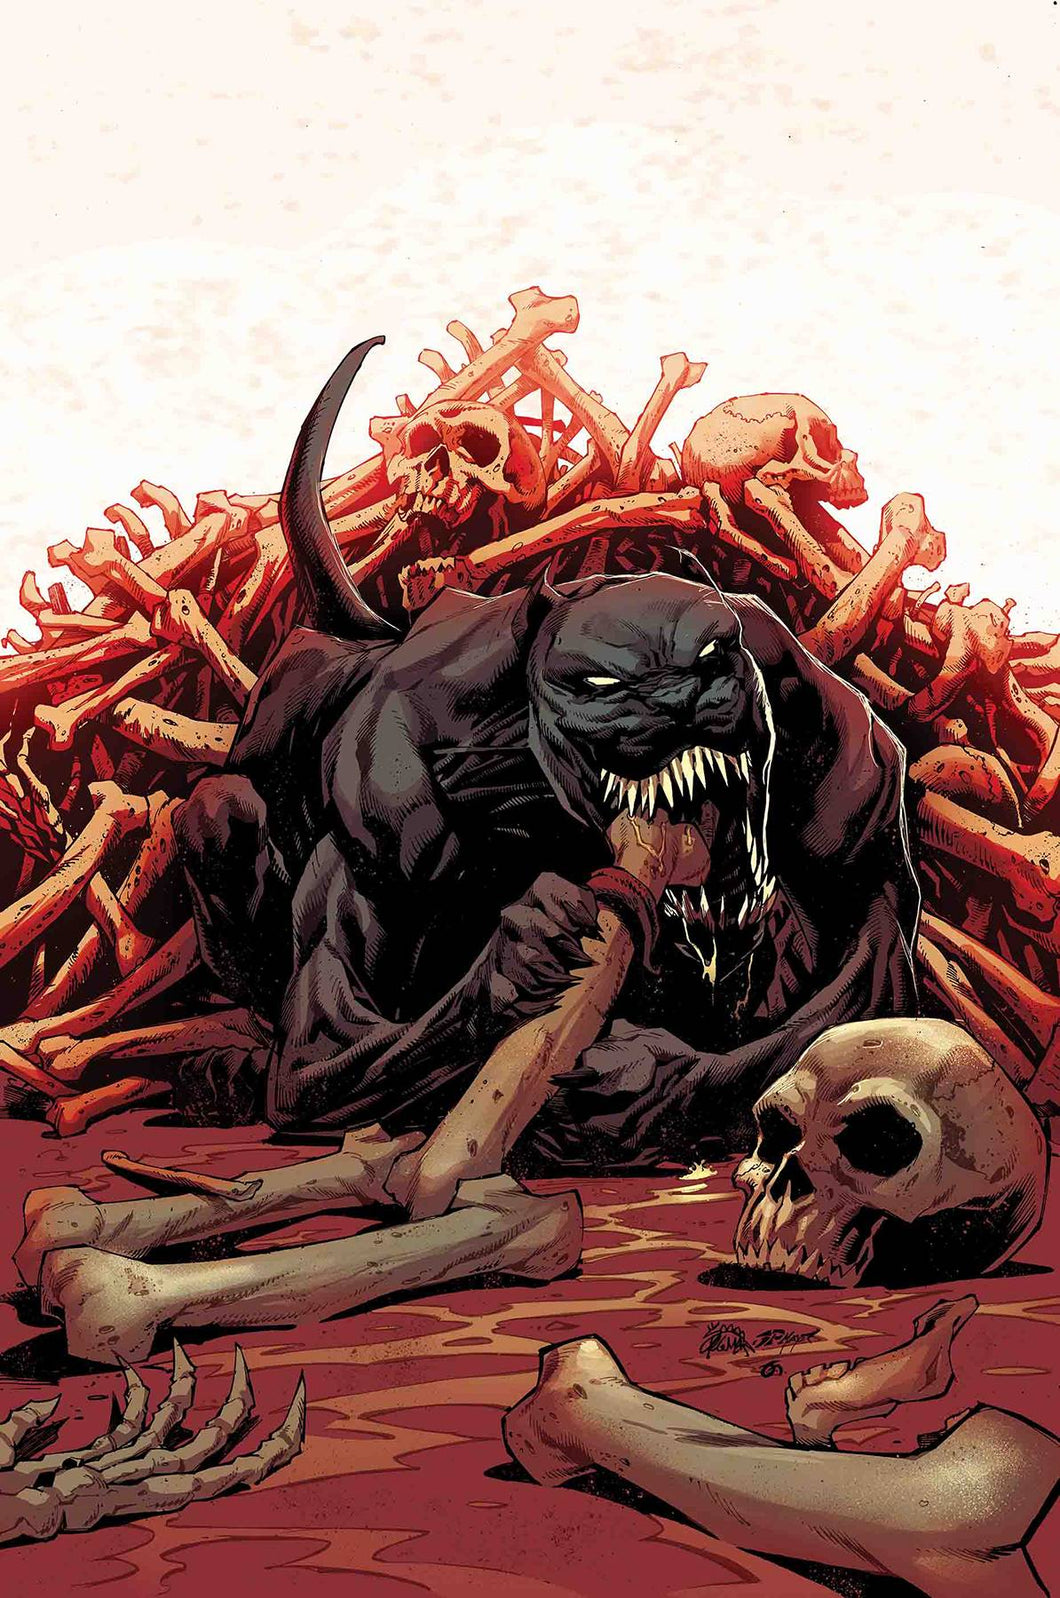 WEB OF VENOM UNLEASHED #1 01/09/19